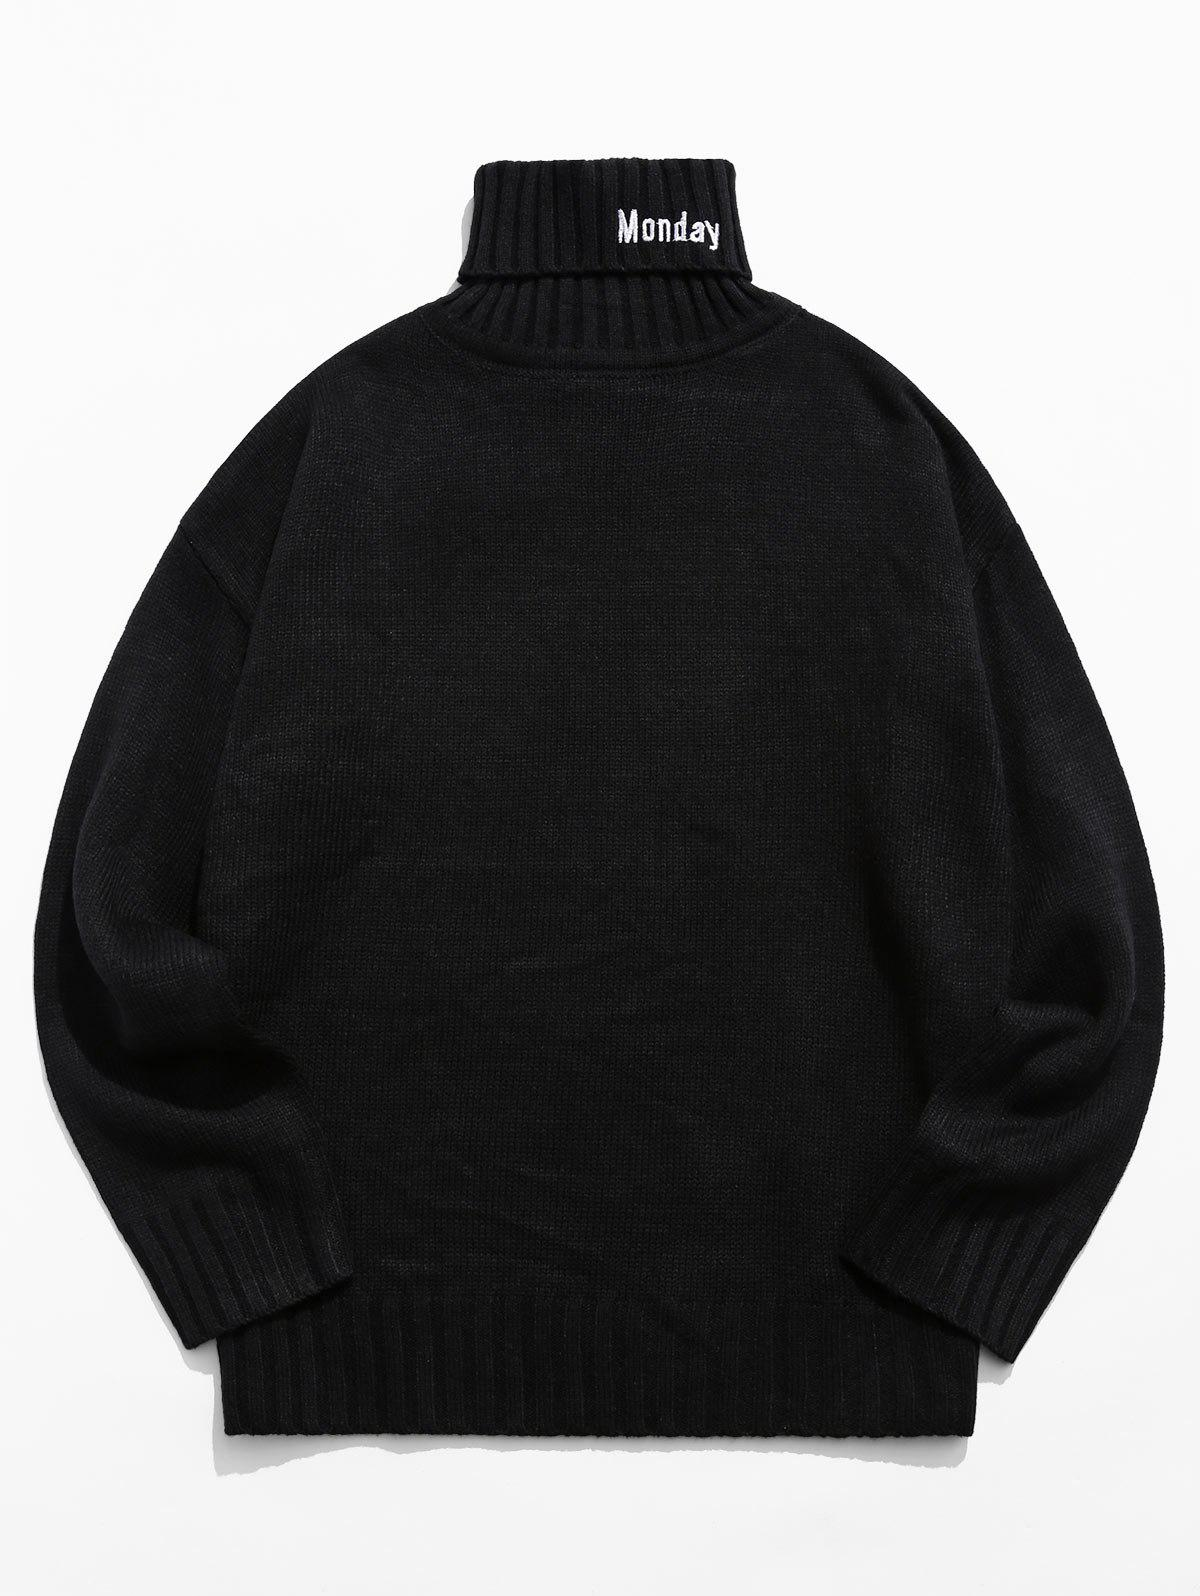 Turtleneck Letter Embroidery Long Sleeve Sweater - BLACK XL